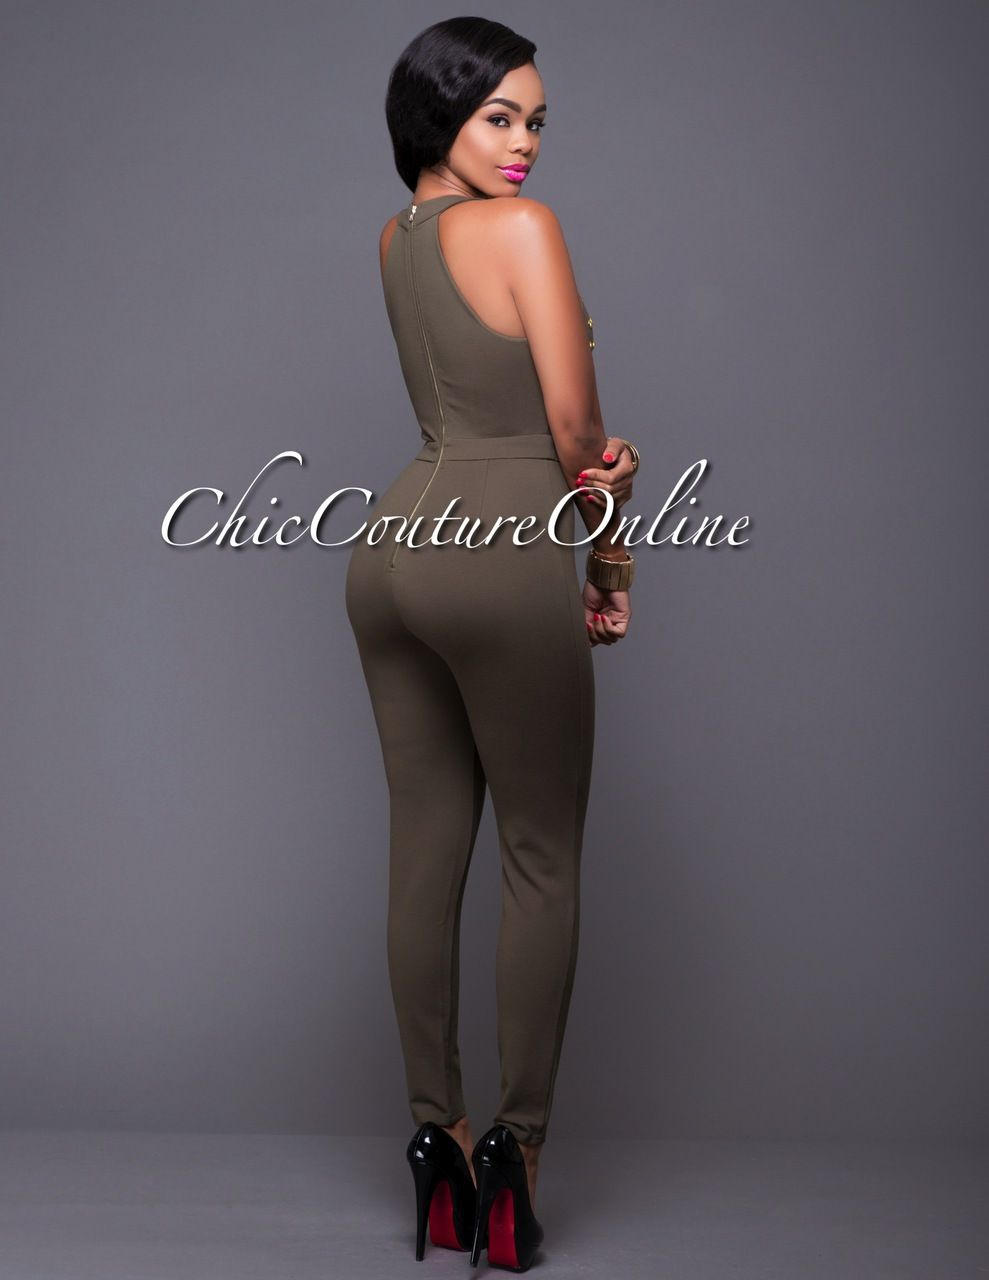 Chic Couture Online - Nightwalker Olive Green Gold Studded Jumpsuit.(http://www.chiccoutureonline.com/nightwalker-olive-green-gold-studded-jumpsuit/)